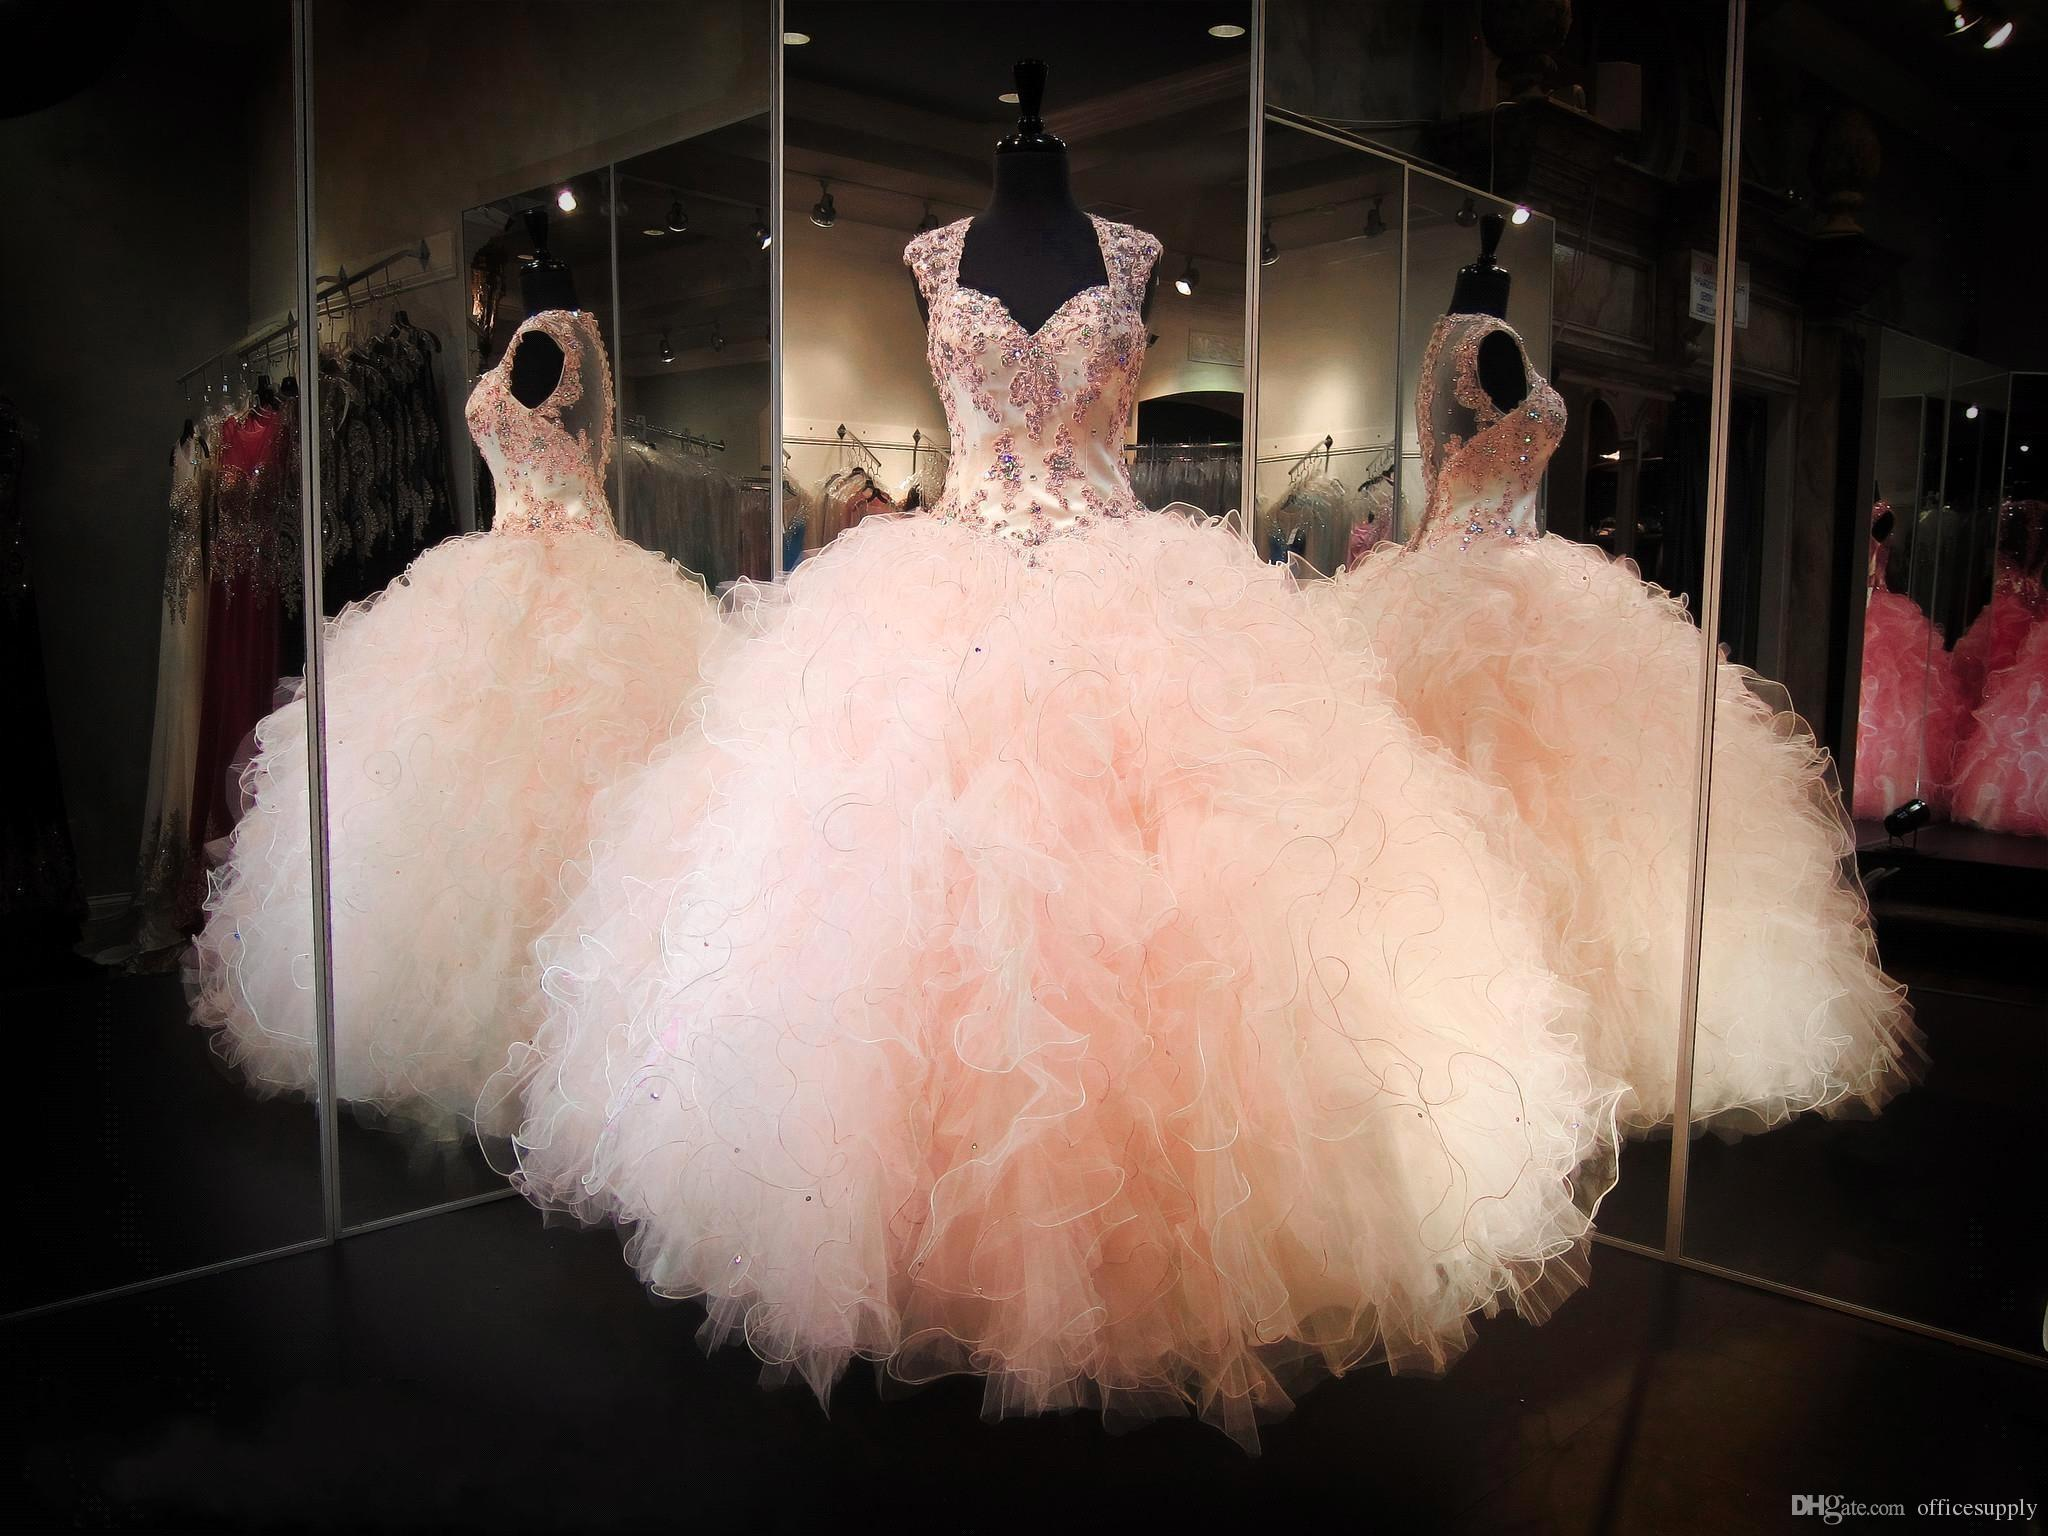 Blush Ball Gown Wedding Dress: Blush Peach Backless Ball Gown Prom Party Dresses 2017